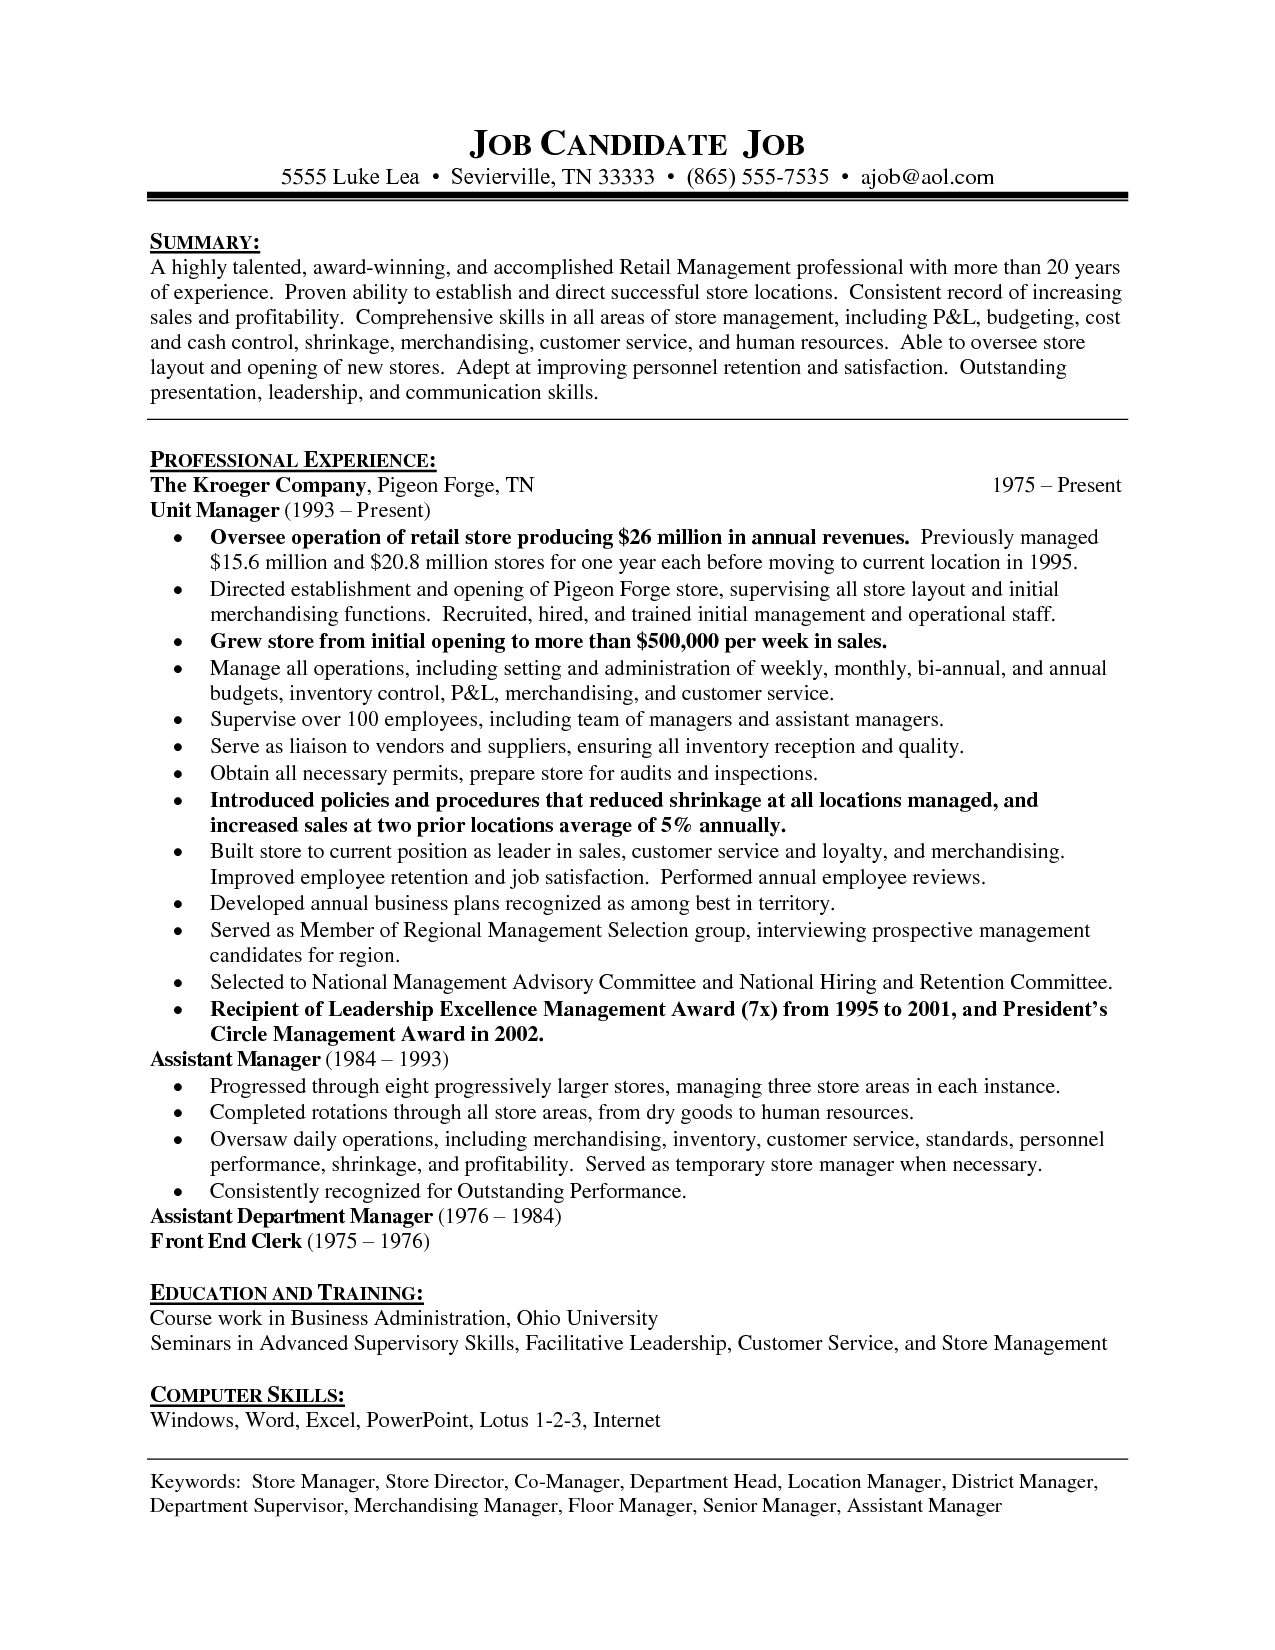 Assistant Manager Resume Format Retail Department Store Manager Resume  Vision Specialist  Good .